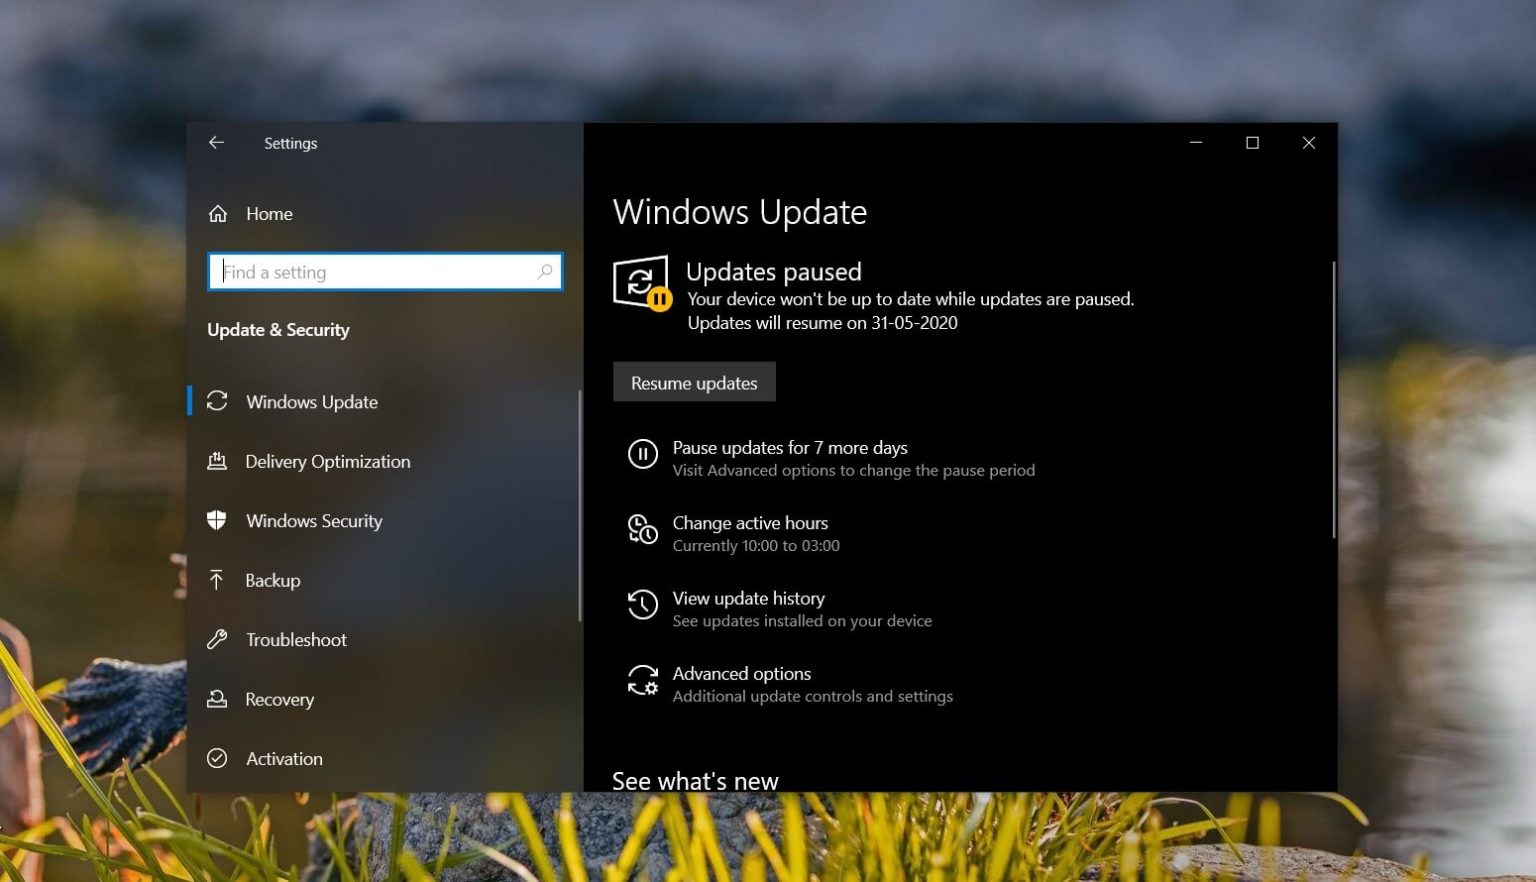 Windows 10 May 2020 Update to release over the next few days